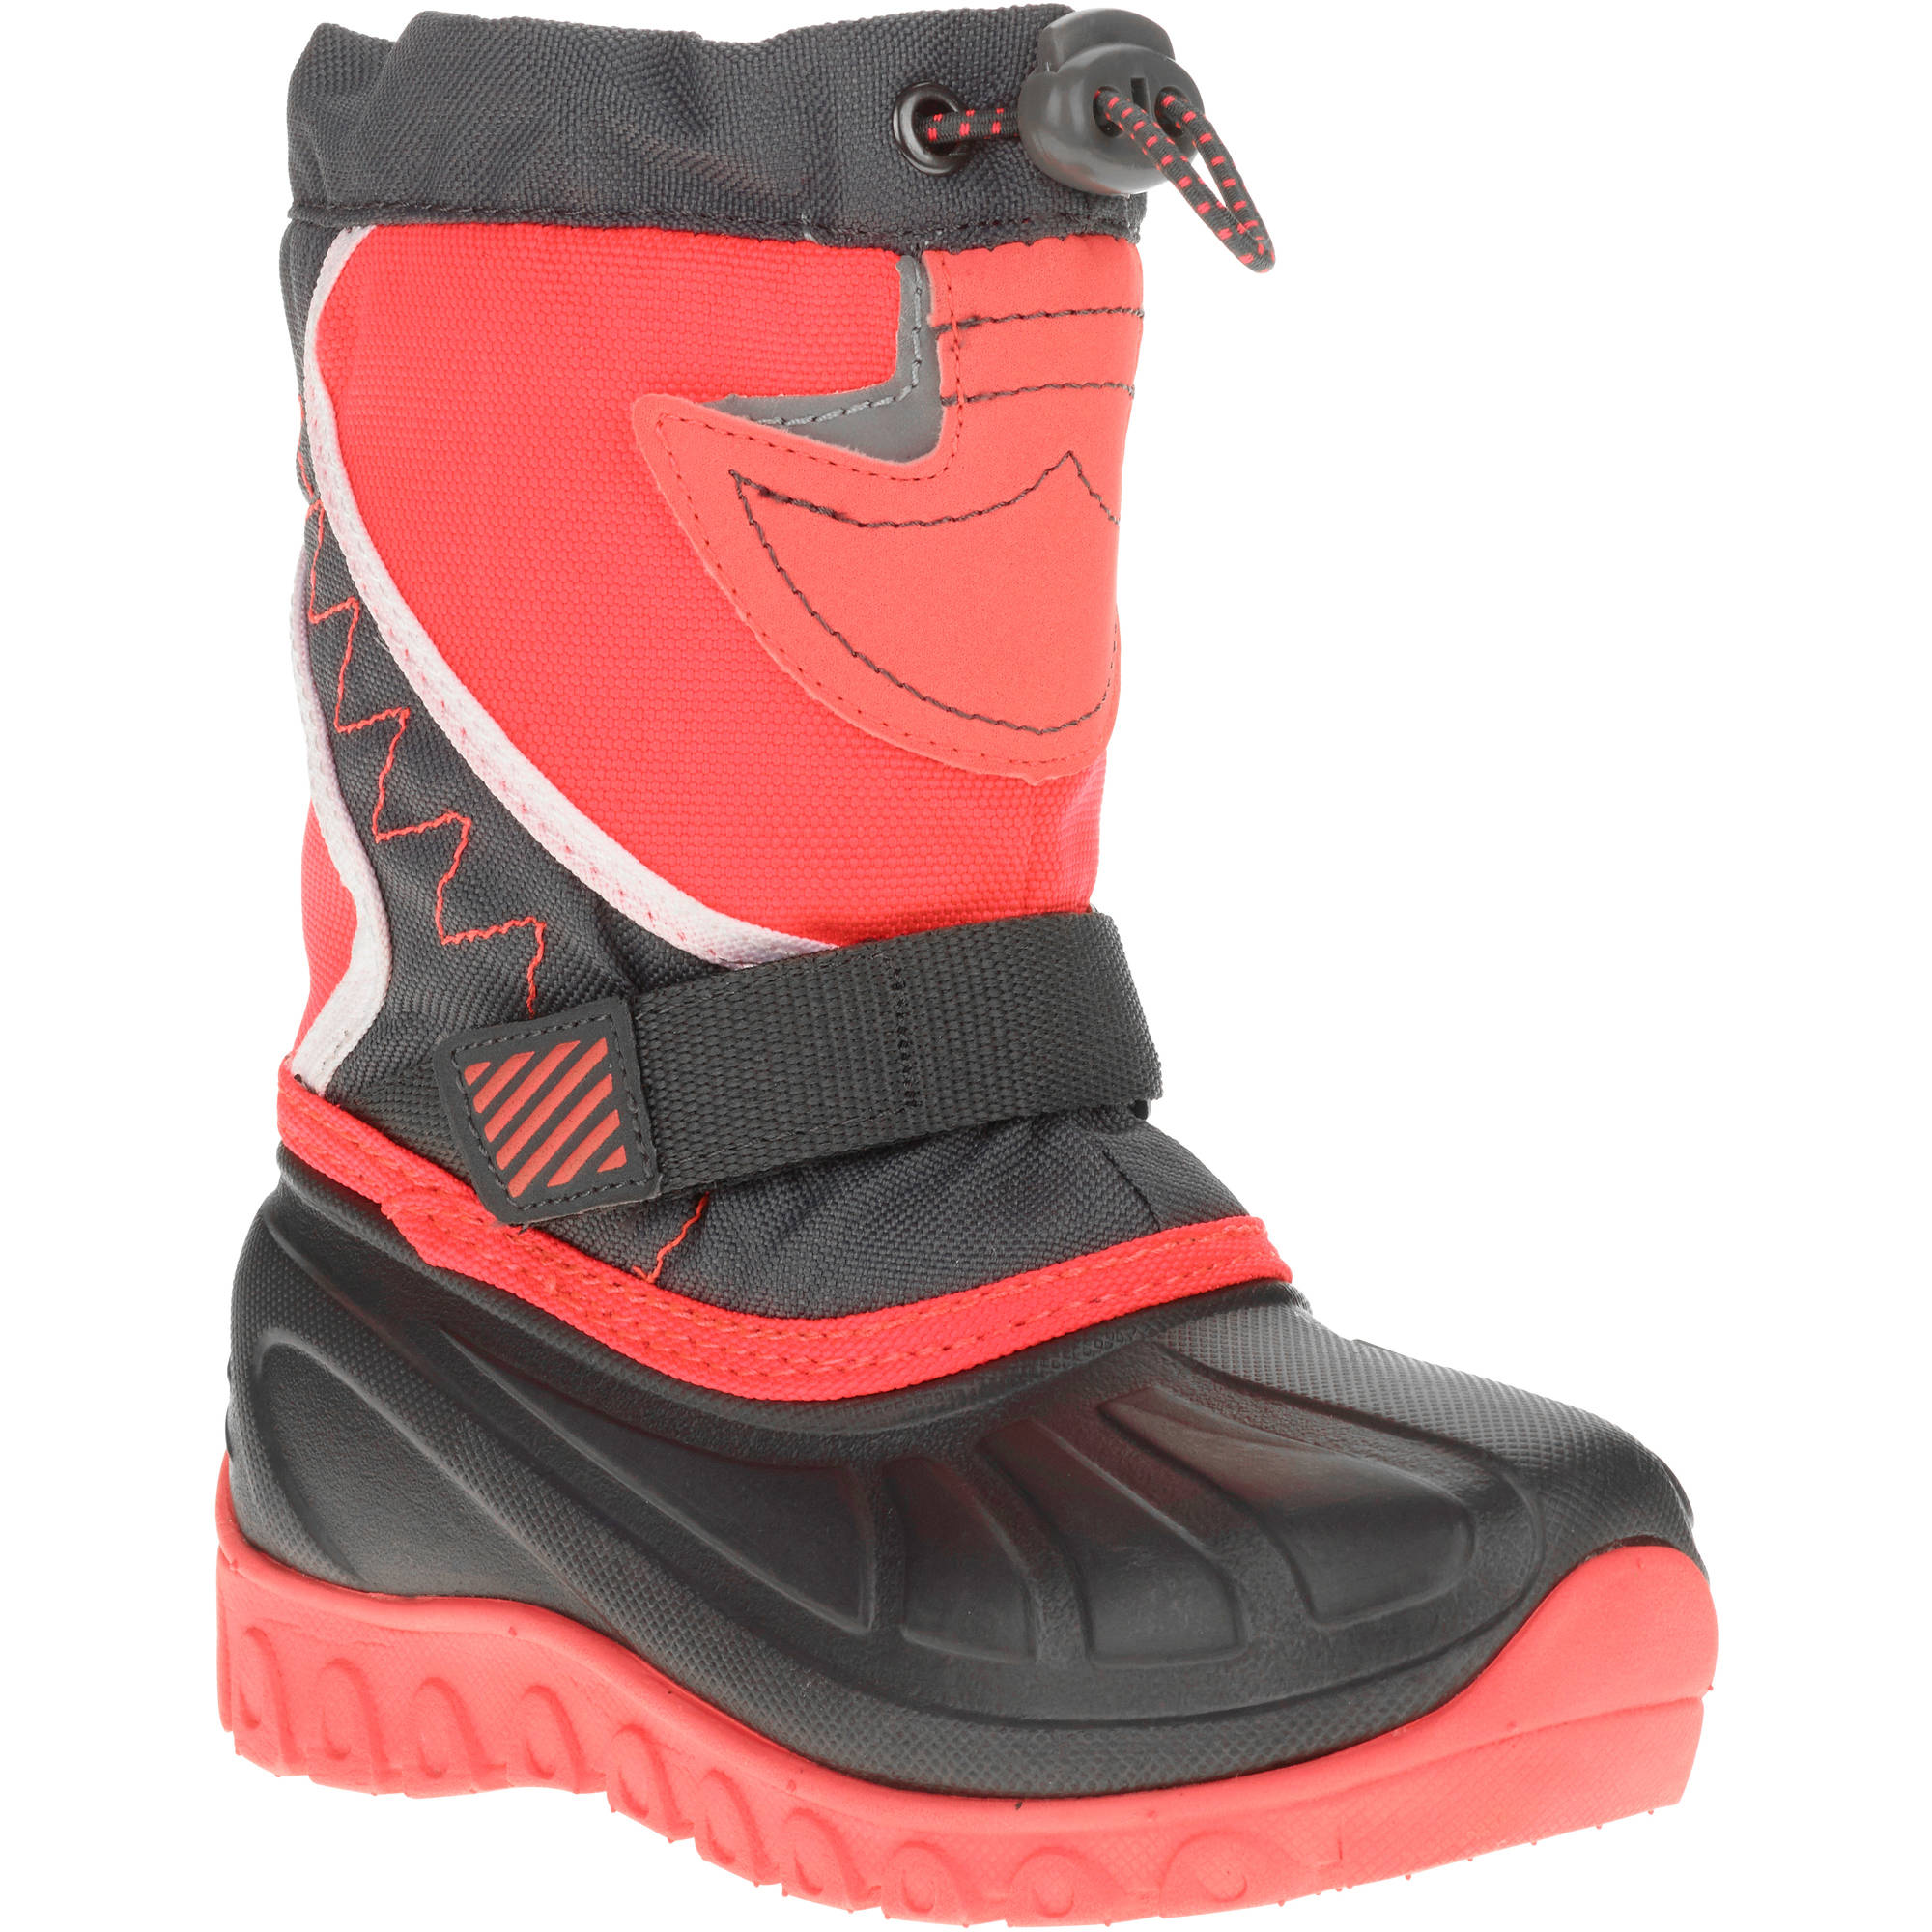 Ozark Trail Toddler Girls' Temp Rated Winter Boot